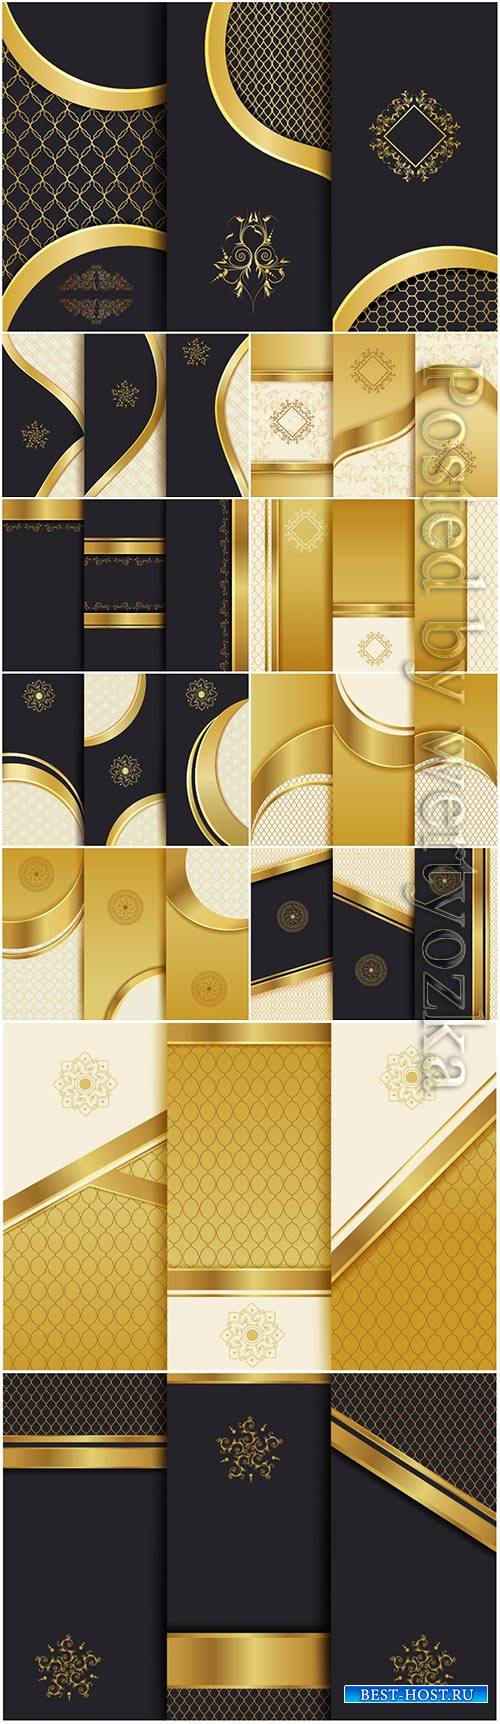 Luxury backgrounds for packaging, vector templates